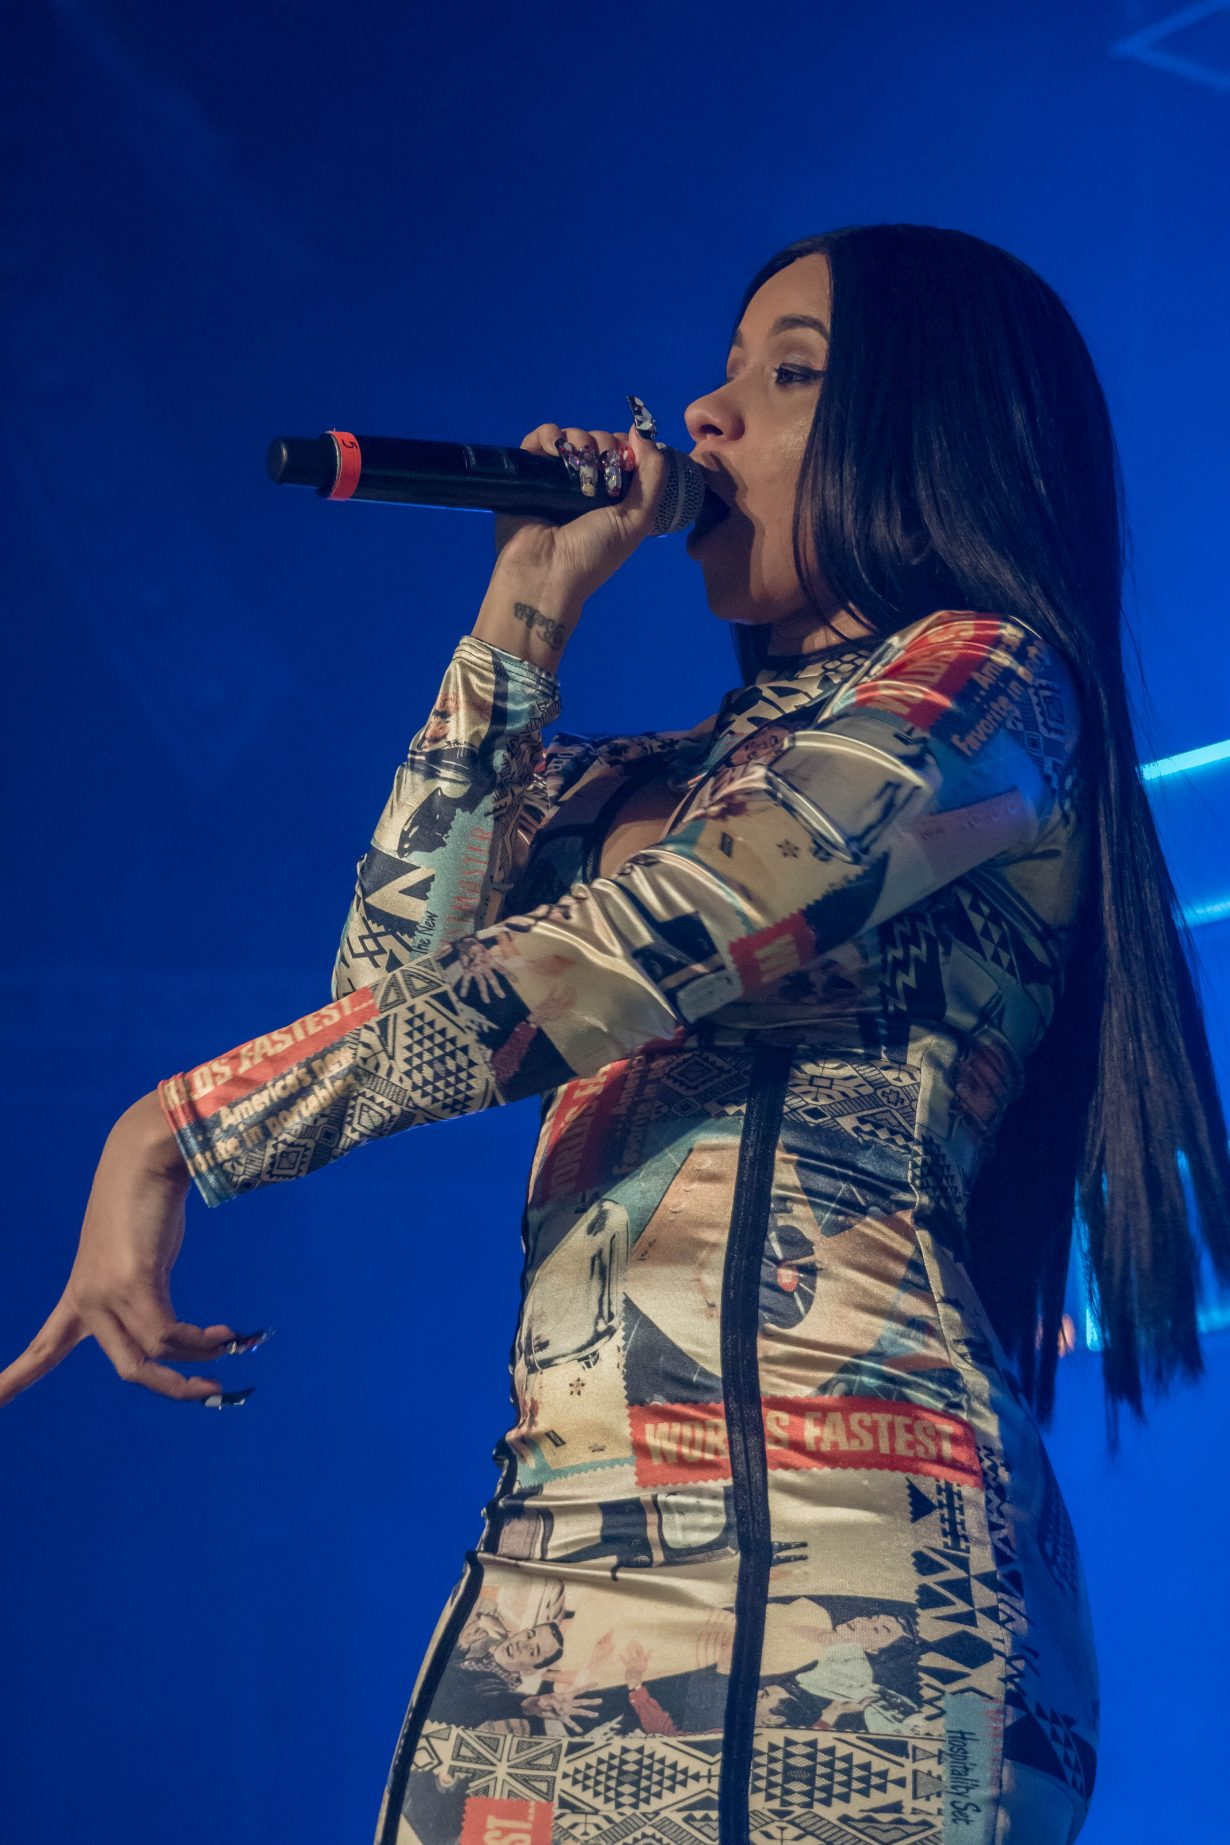 Cardi B. RapCaviar Aragon Ballroom 2017 Chicago Il. Photo by Kevin Baker 5 1230x1845 RapCaviar Sets Chicago On Fire with Lil Uzi Vert, Playboi Carti, Cardi B, DJ Drama and More